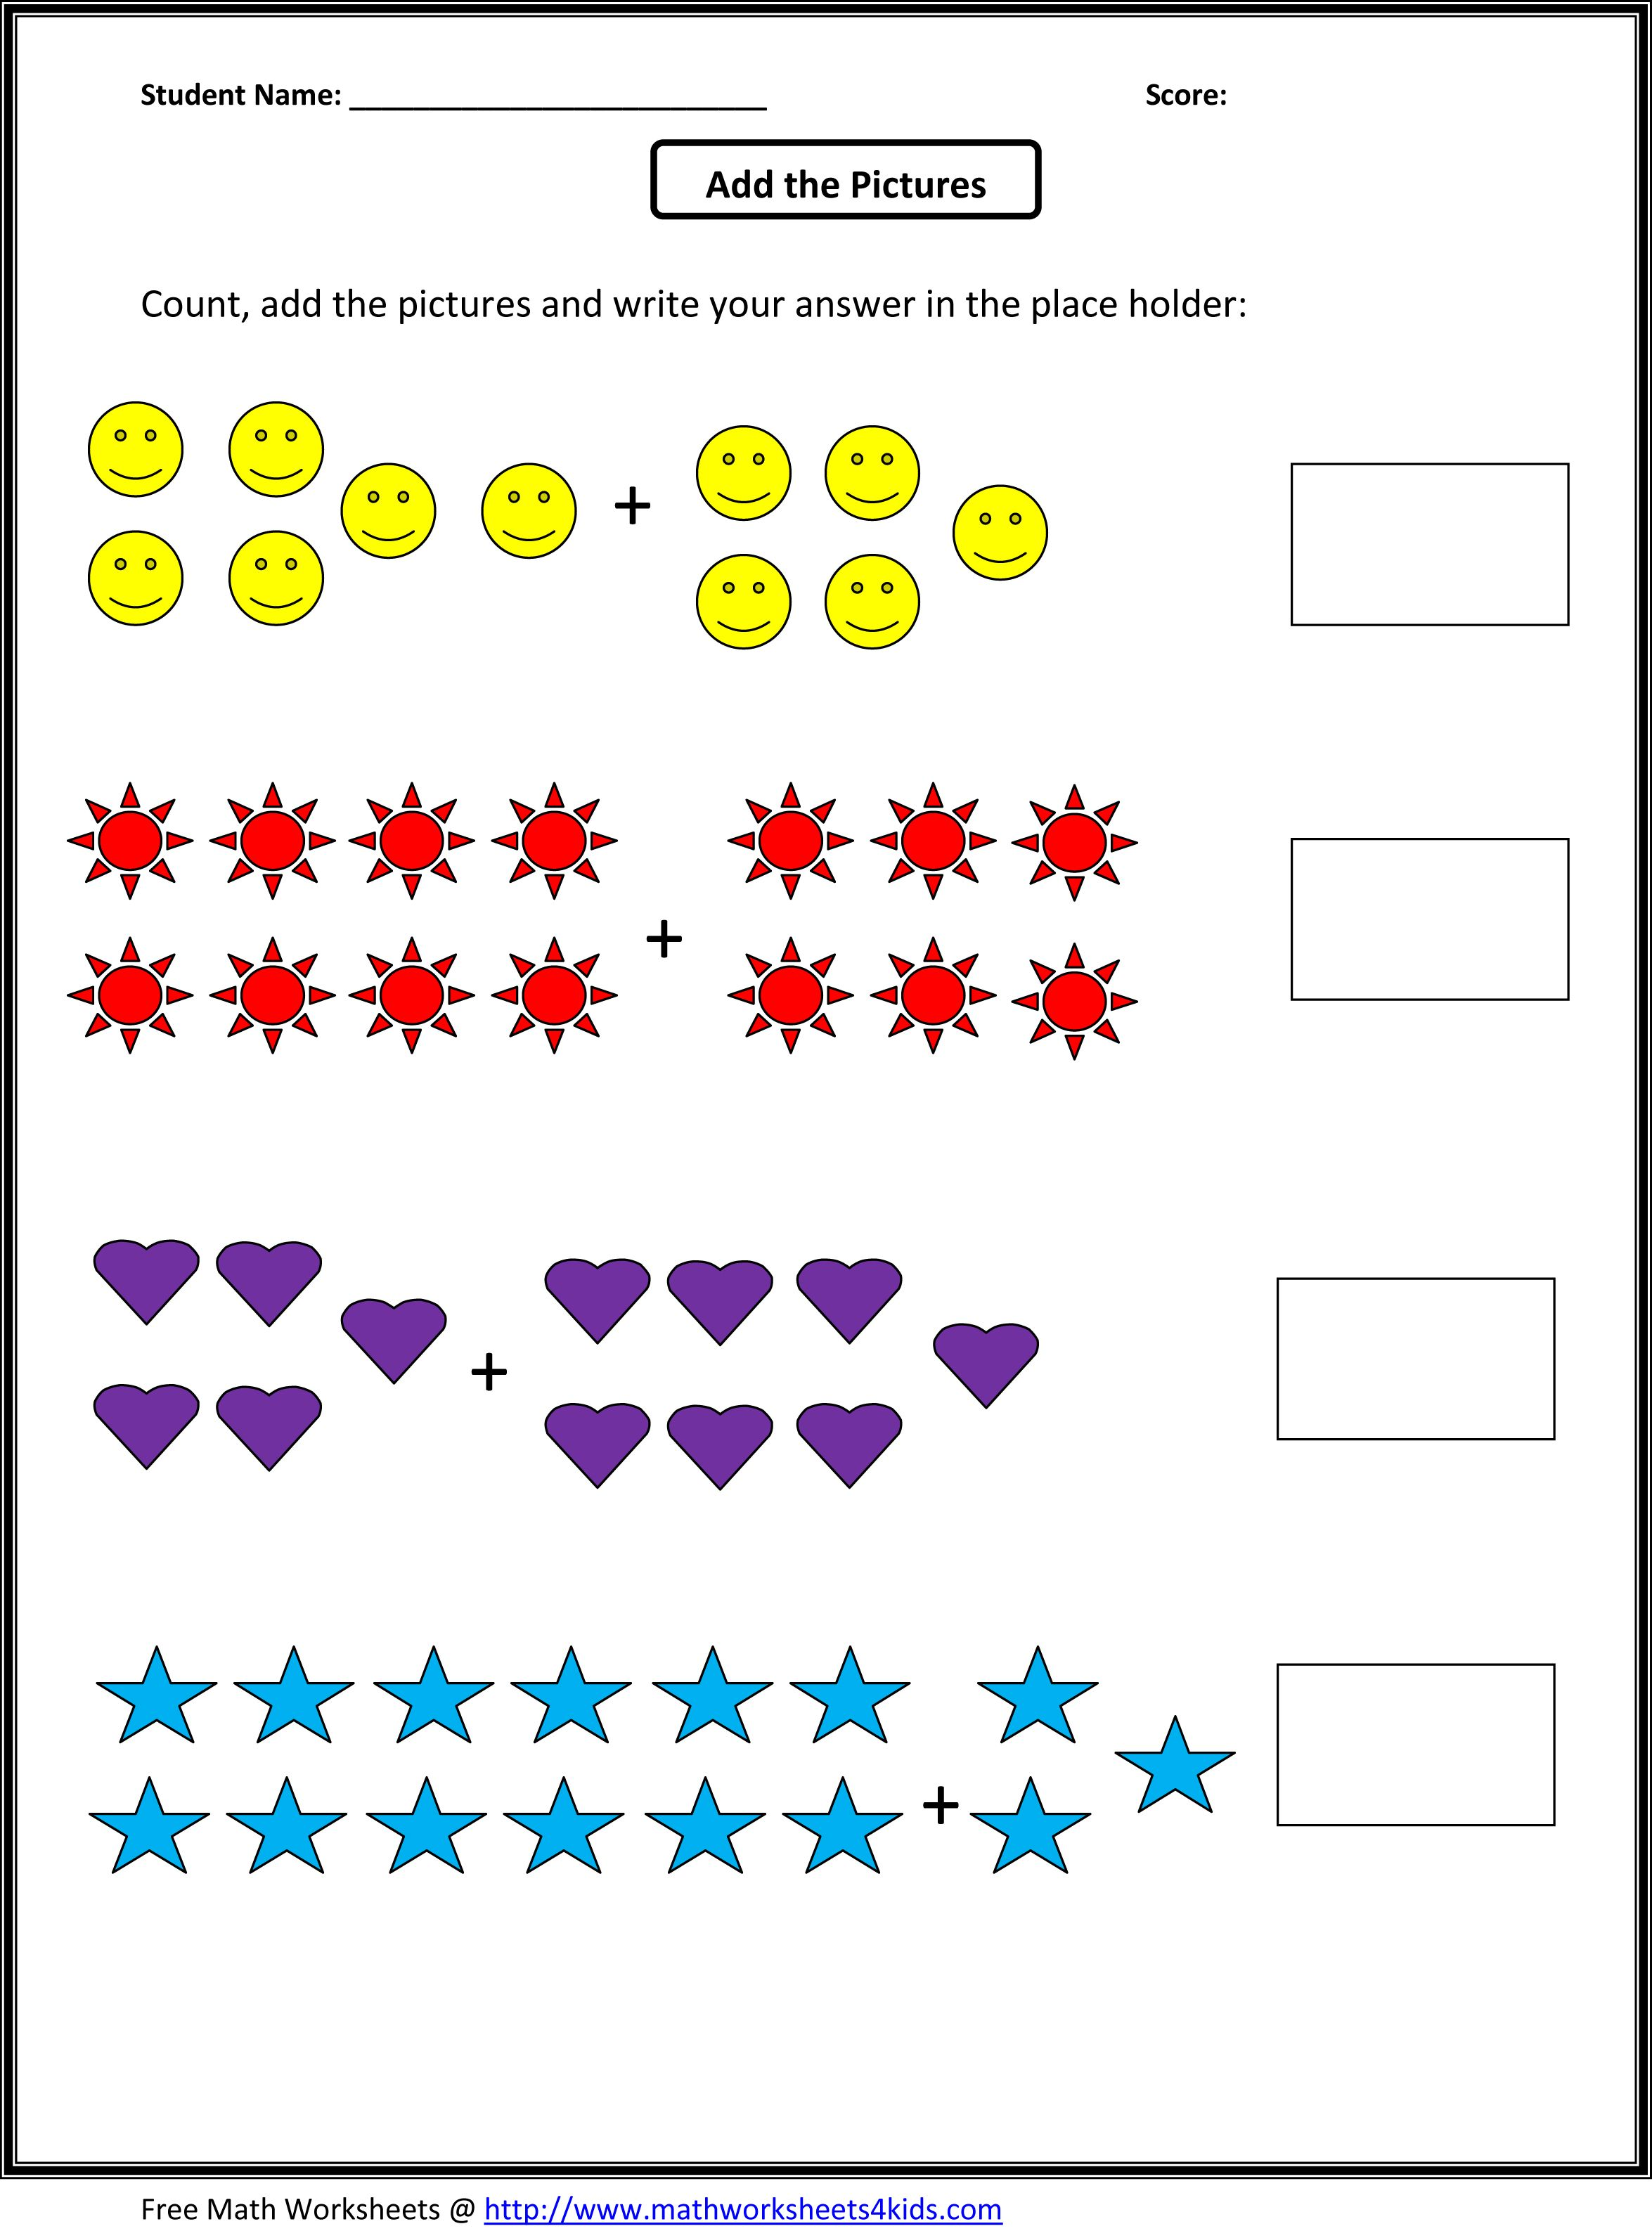 Count and add the pictures   First grade math worksheets [ 3174 x 2350 Pixel ]